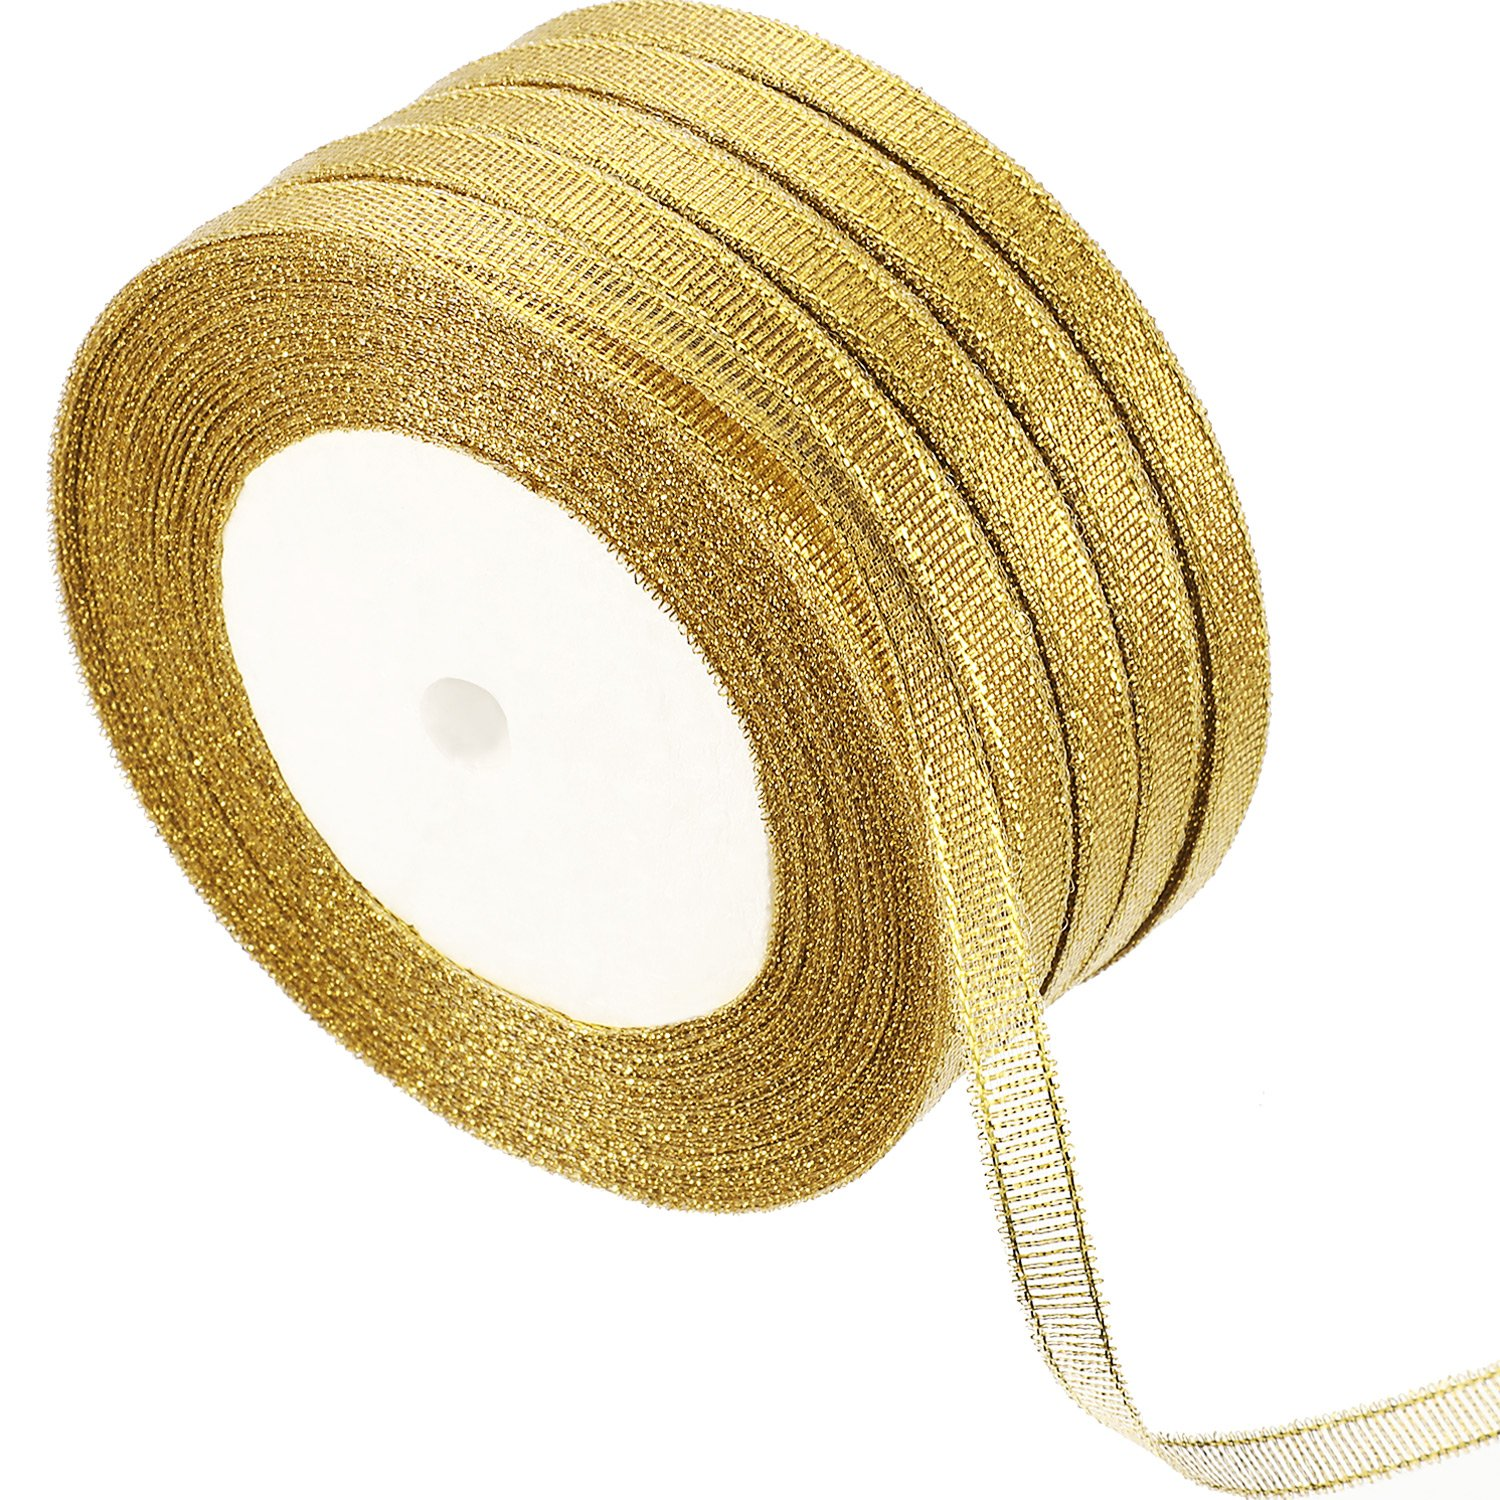 Gejoy 5 Rolls 0.24 Inch Gold Glitter Ribbons Metallic Ribbons for Crafters Gifts Wrapping Decorations DIY Crafts Arts 4336858997